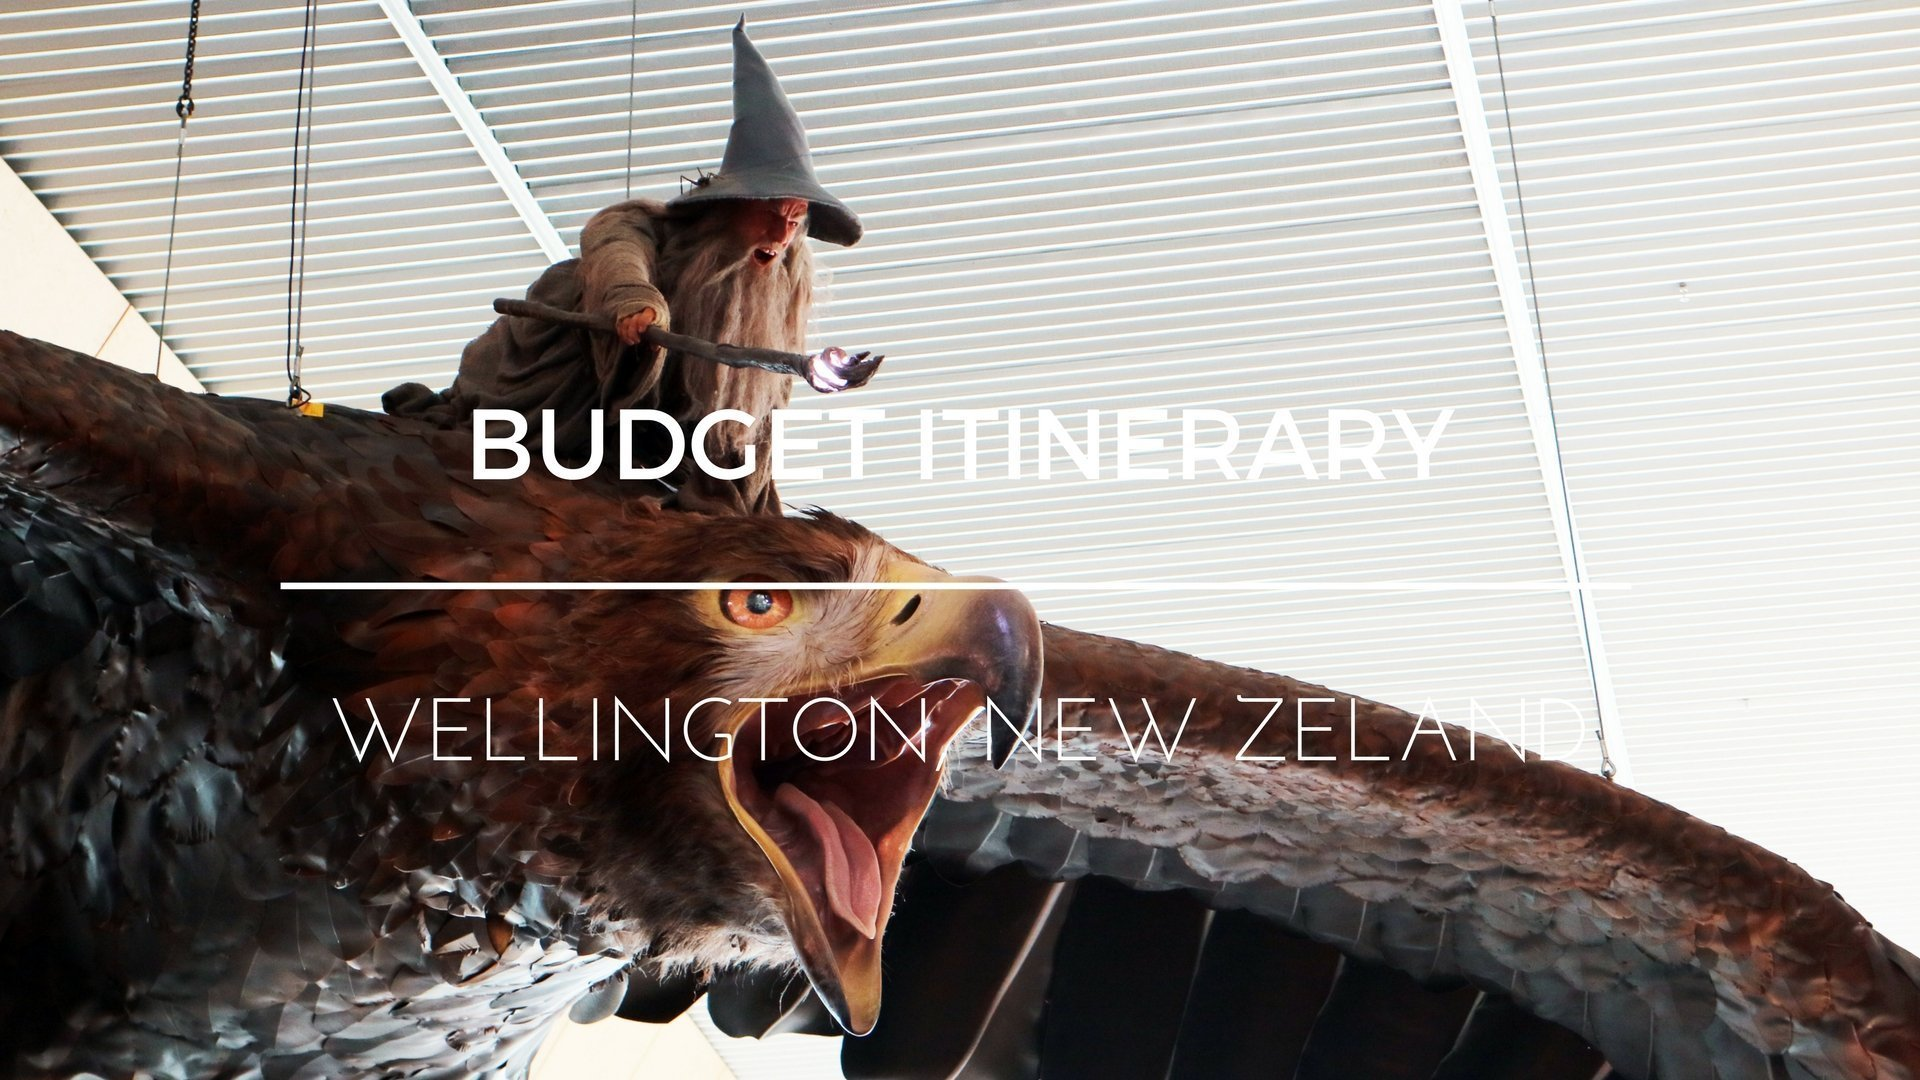 A Budget Travel Guide for Wellington, New Zealand